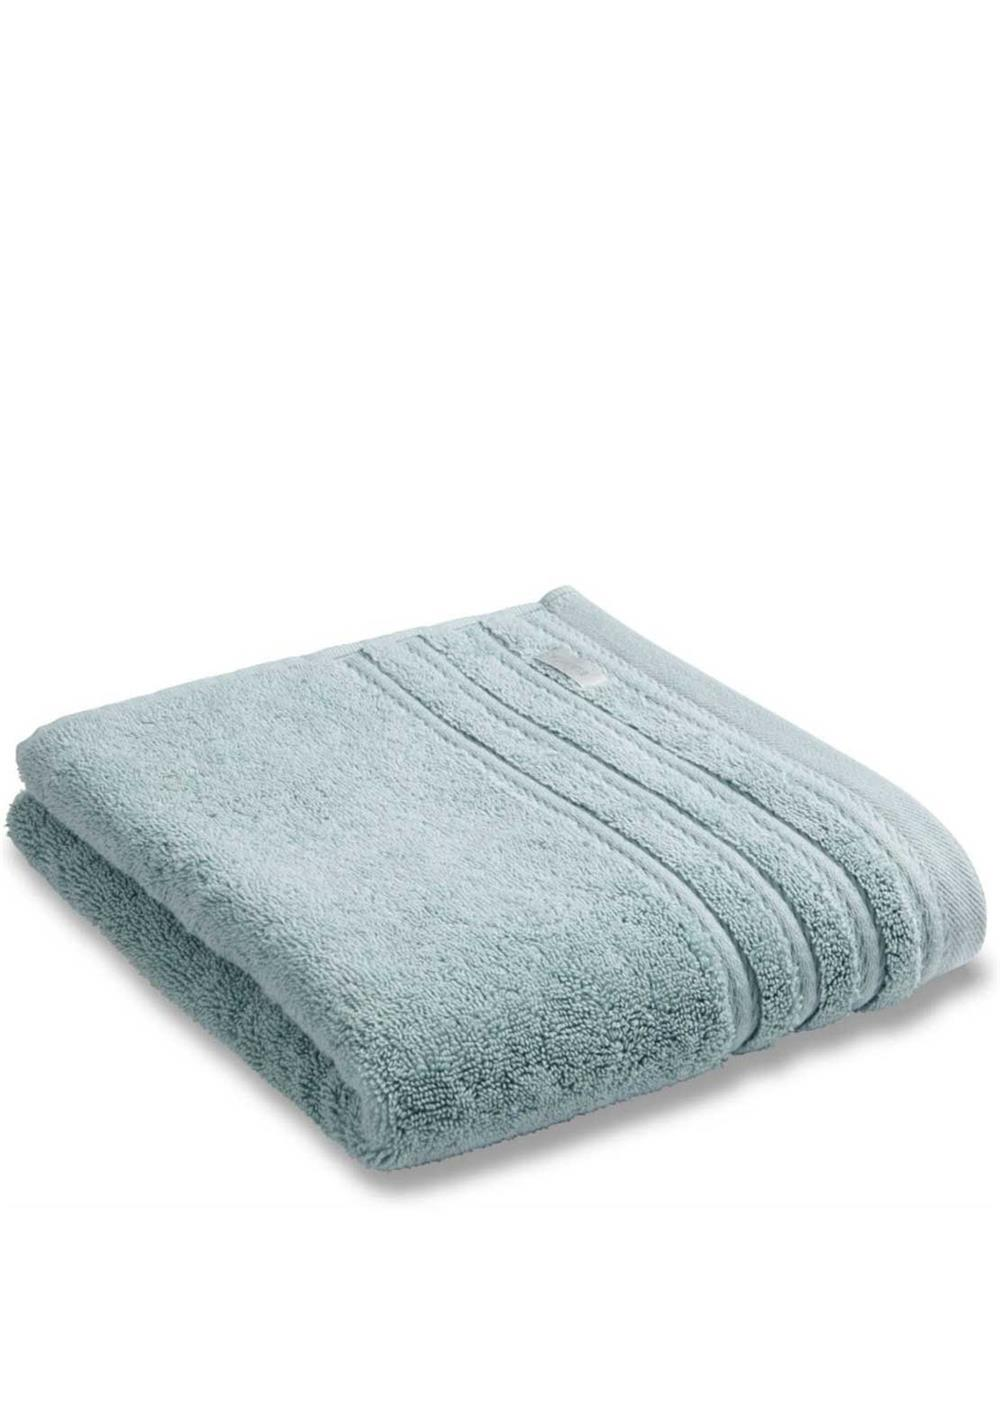 Bianca Combed Cotton Towel Range, Duck Egg Green